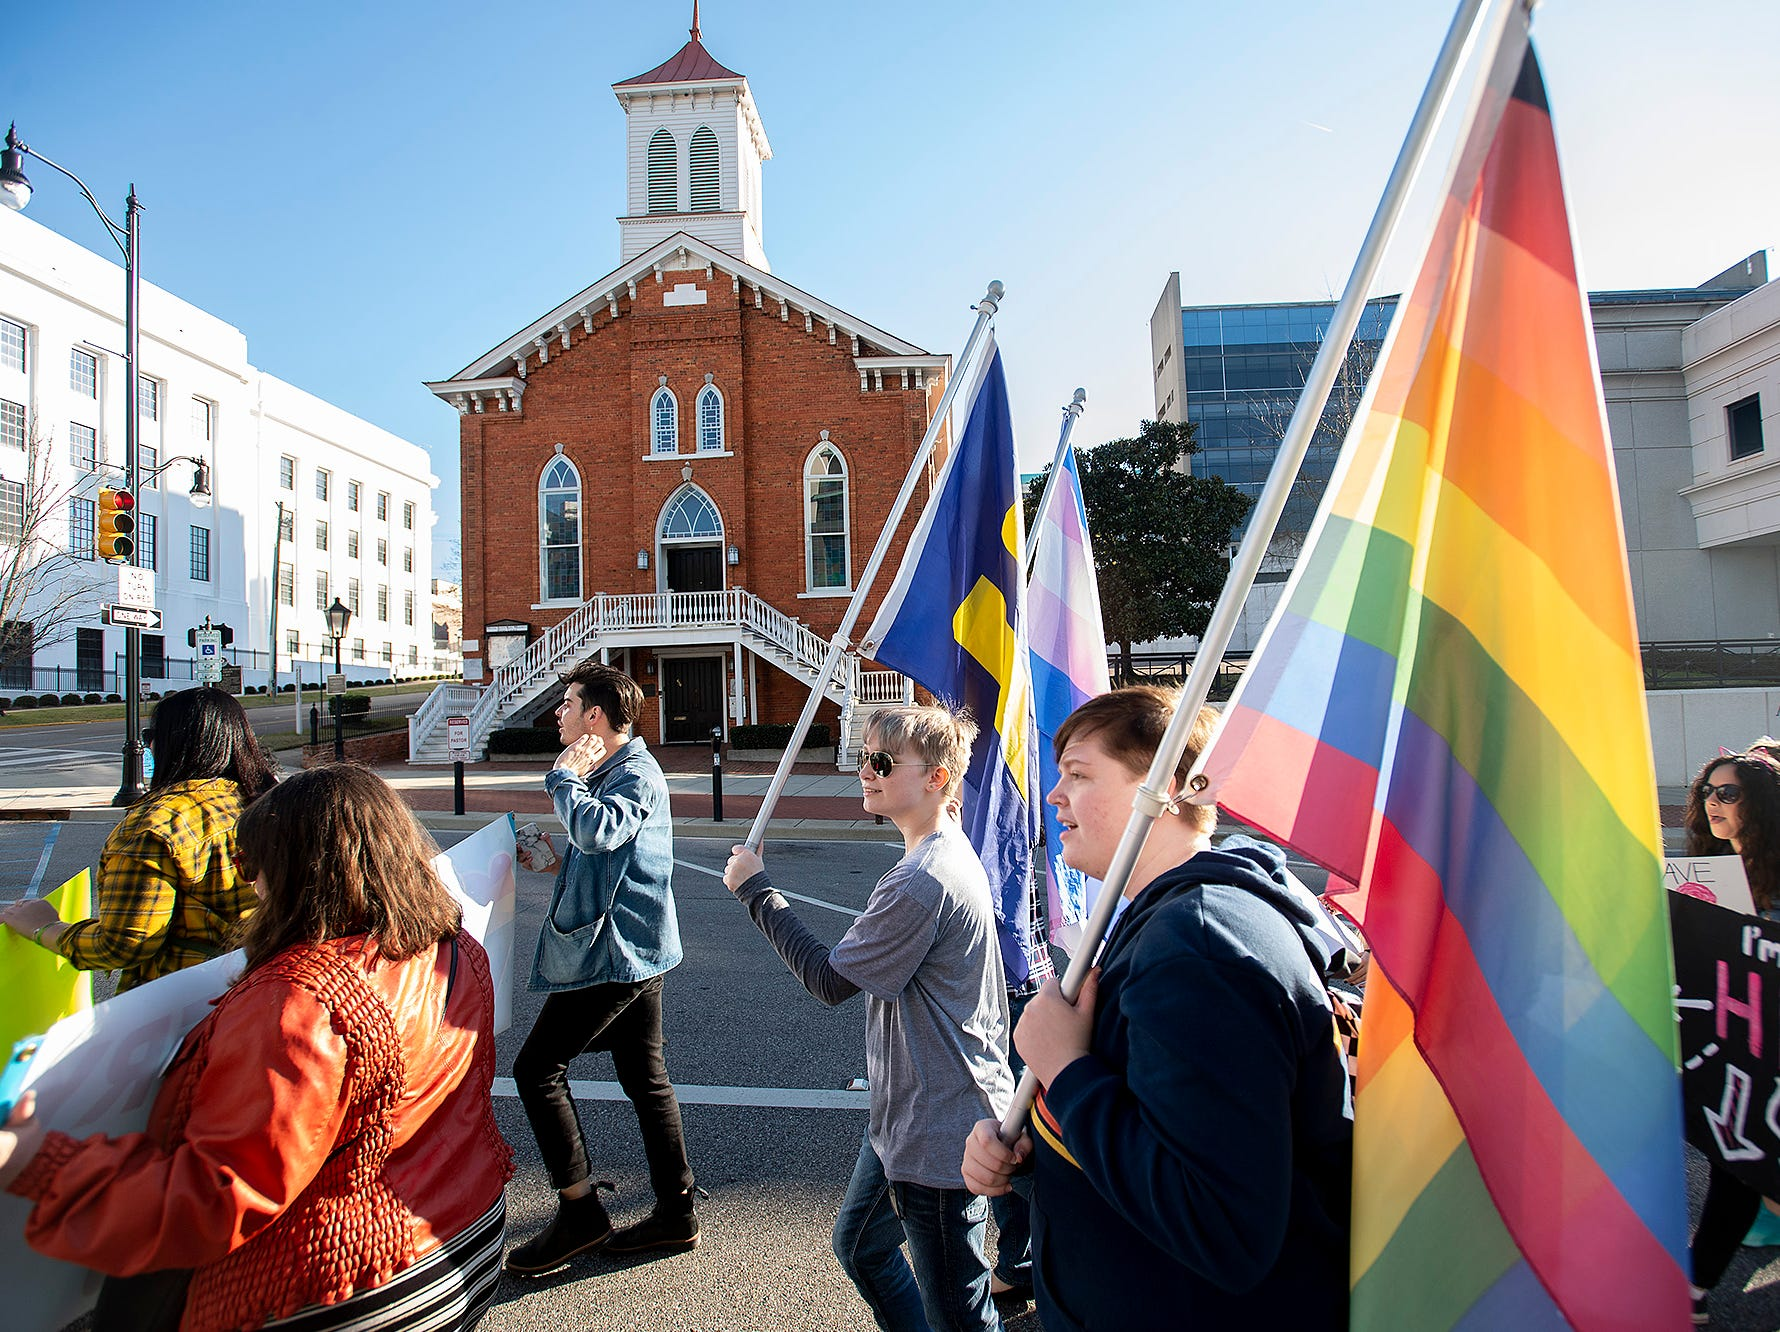 Marchers walk up Dexter Avenue, past the Dexter Avenue King Memorialk Baptist Church, to the State Capitol Building during the Montgomery Women's March in downtown Montgomery, Ala., on Saturday January 26, 2019.